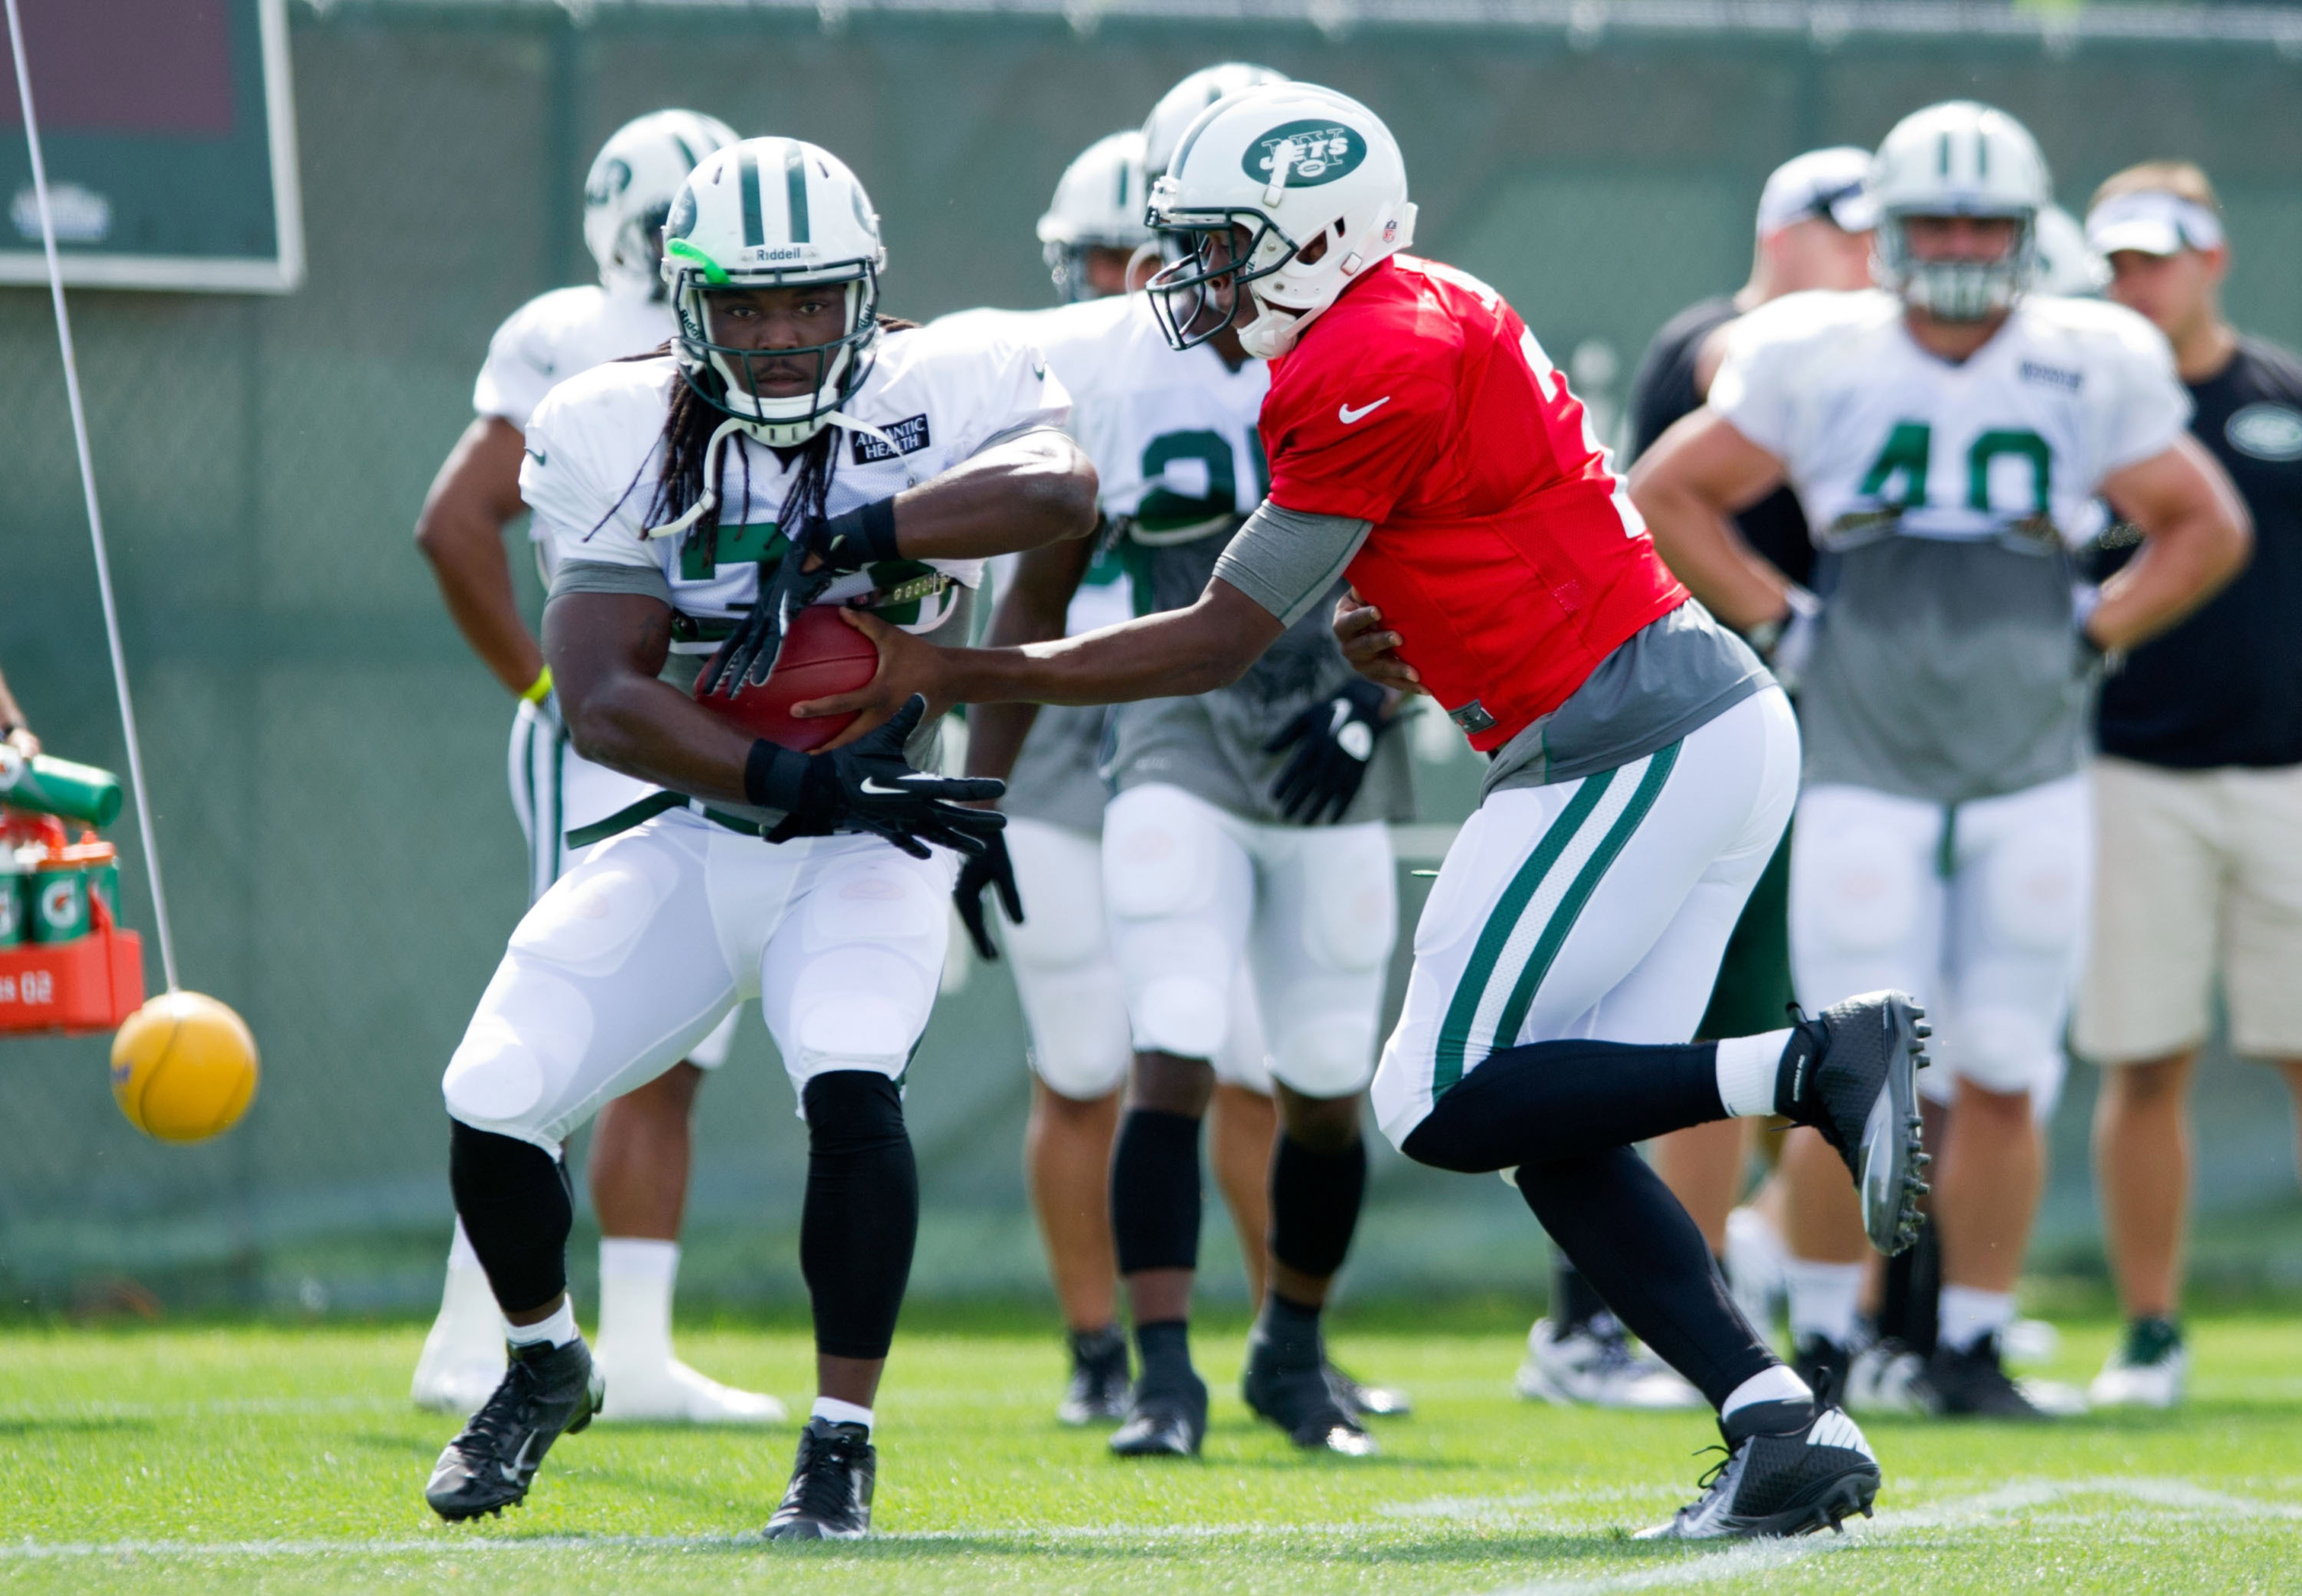 Chris Ivory doesn't expect to play Friday, remains solid fantasy option for now